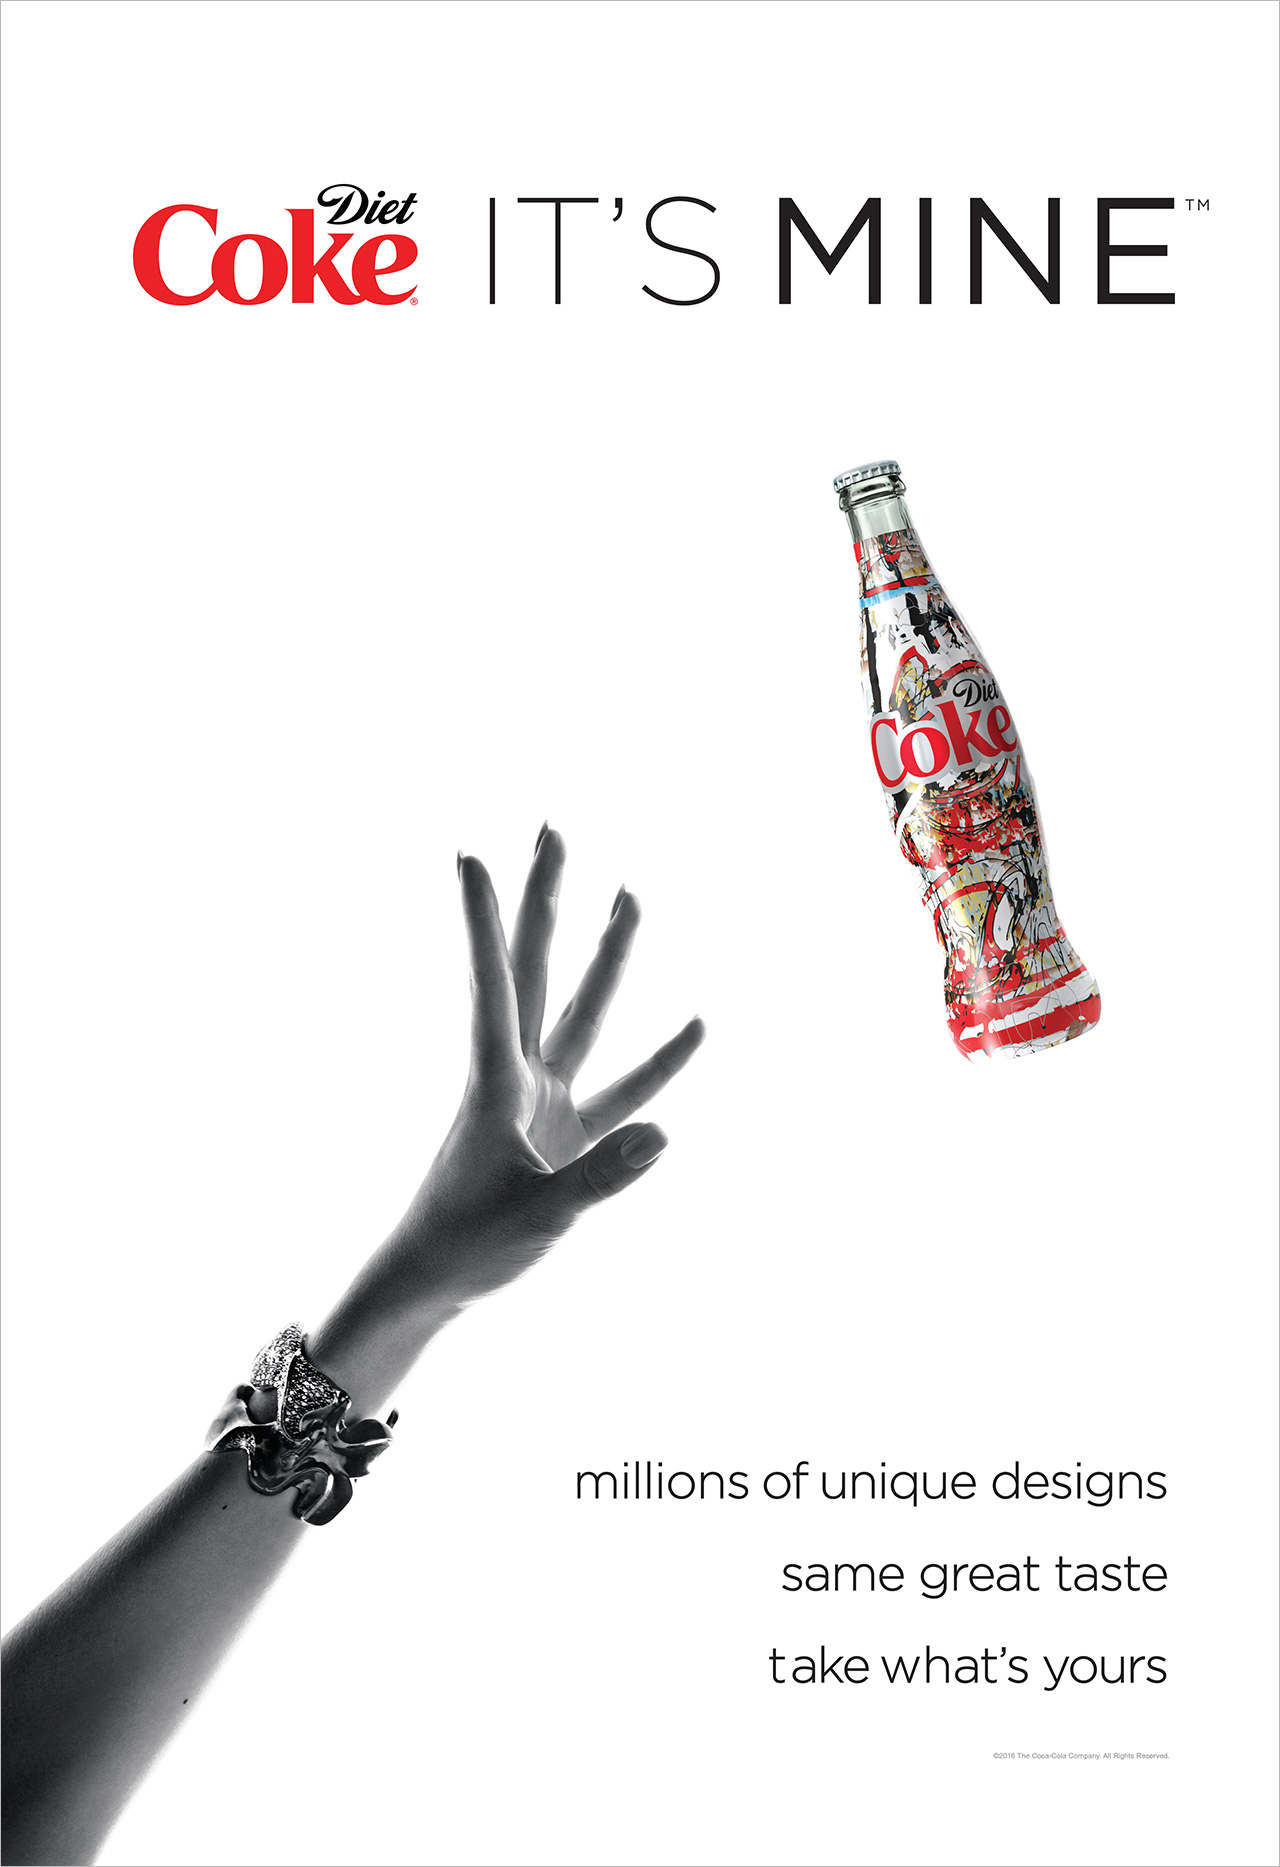 Diet Coke Prints Literally Millions of Unique Labels for New Its Mine Campaign  Adweek